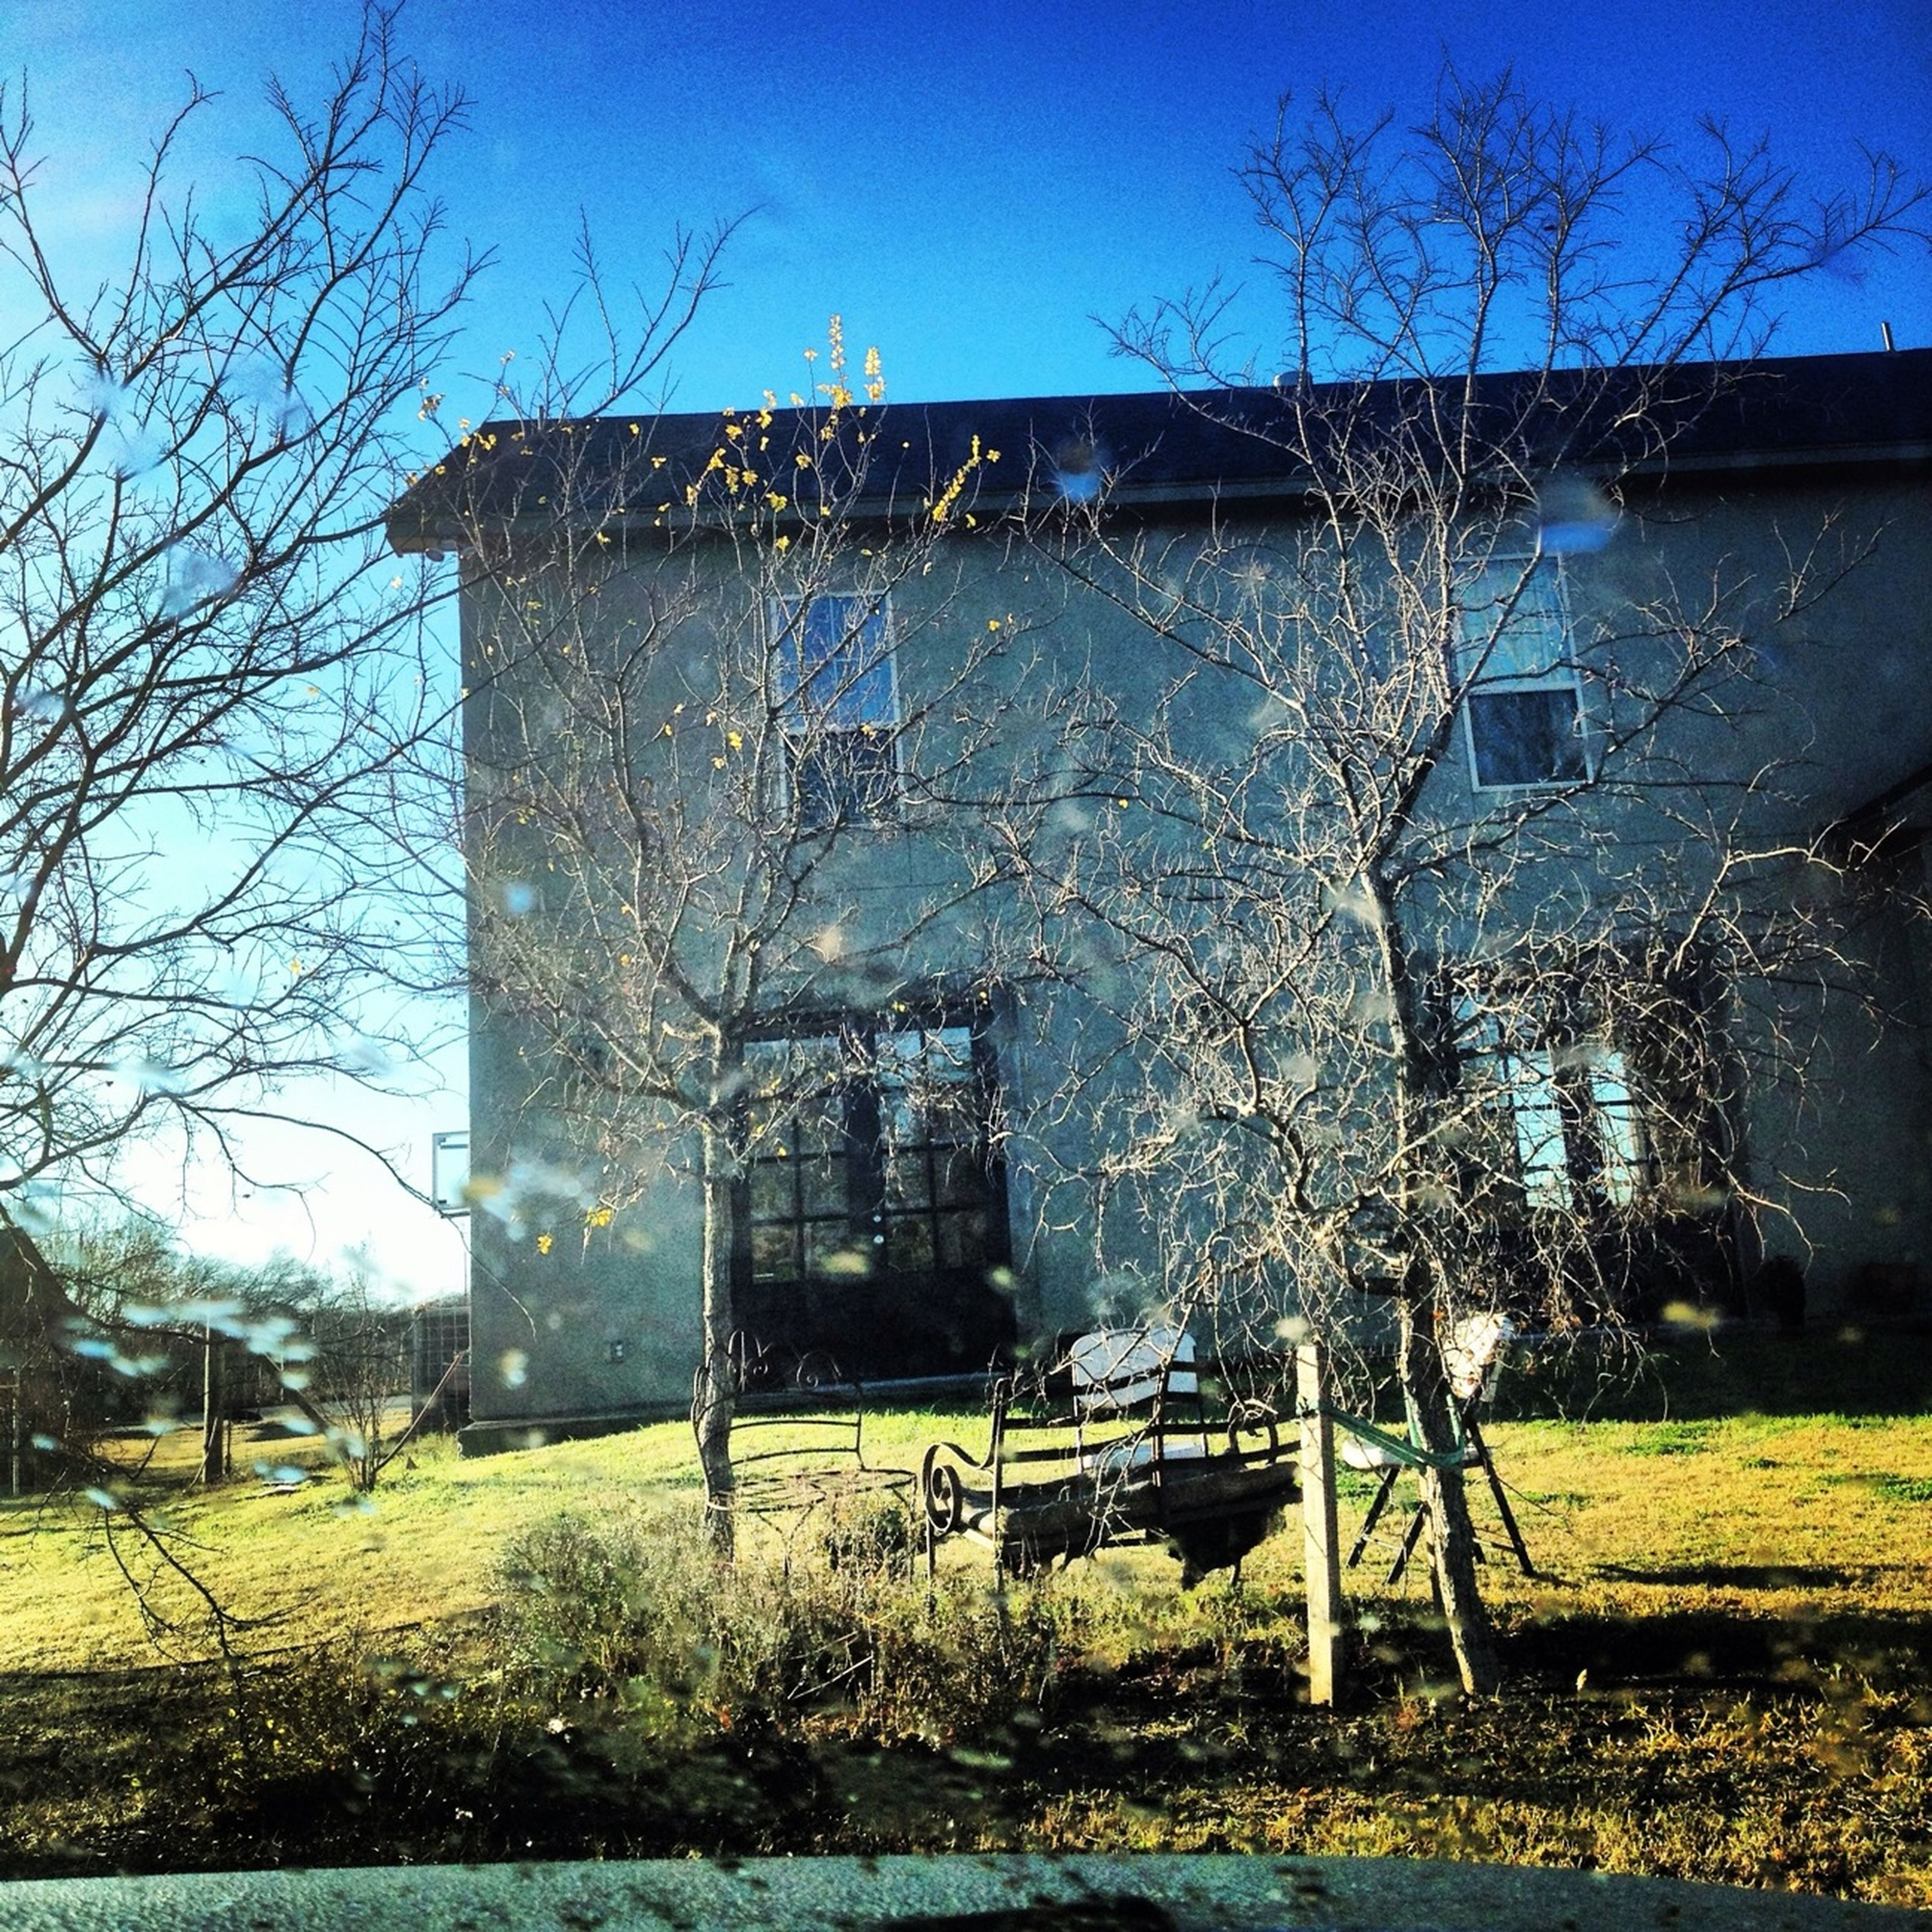 building exterior, architecture, built structure, tree, grass, bare tree, clear sky, blue, abandoned, lawn, house, day, field, sunlight, growth, window, branch, building, sky, old